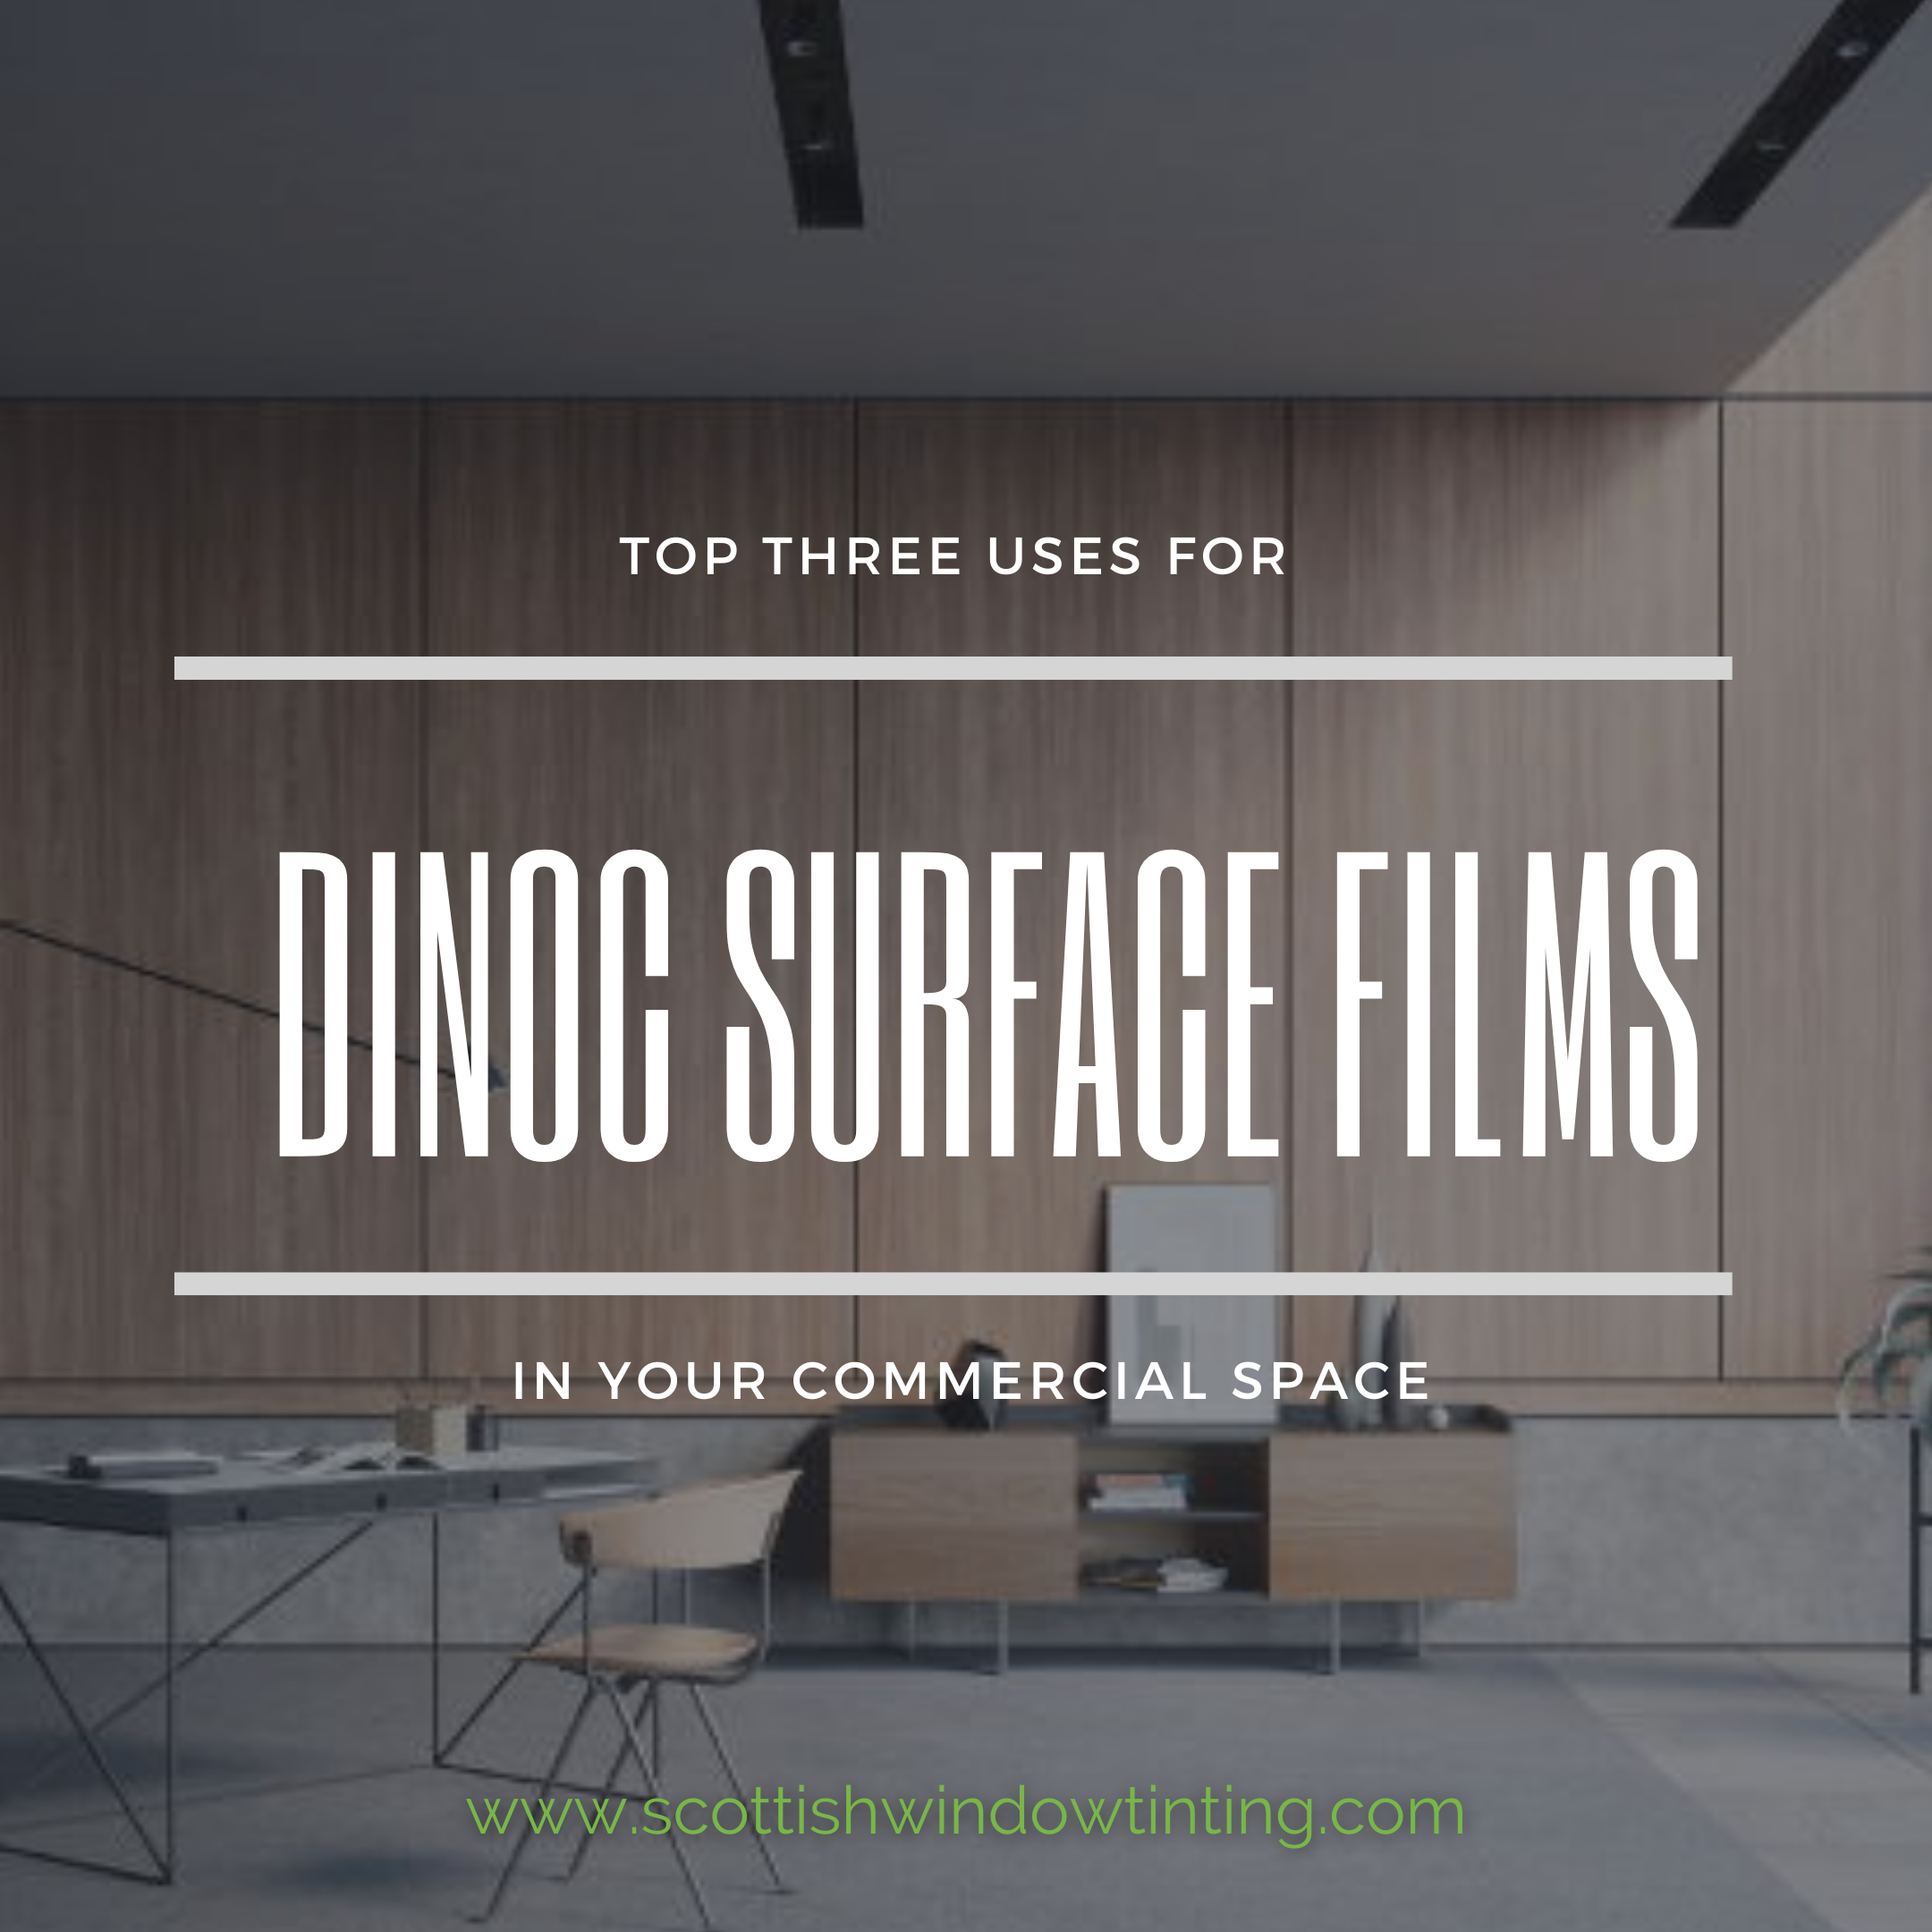 The Top Three Uses For DI-NOC Surface Films